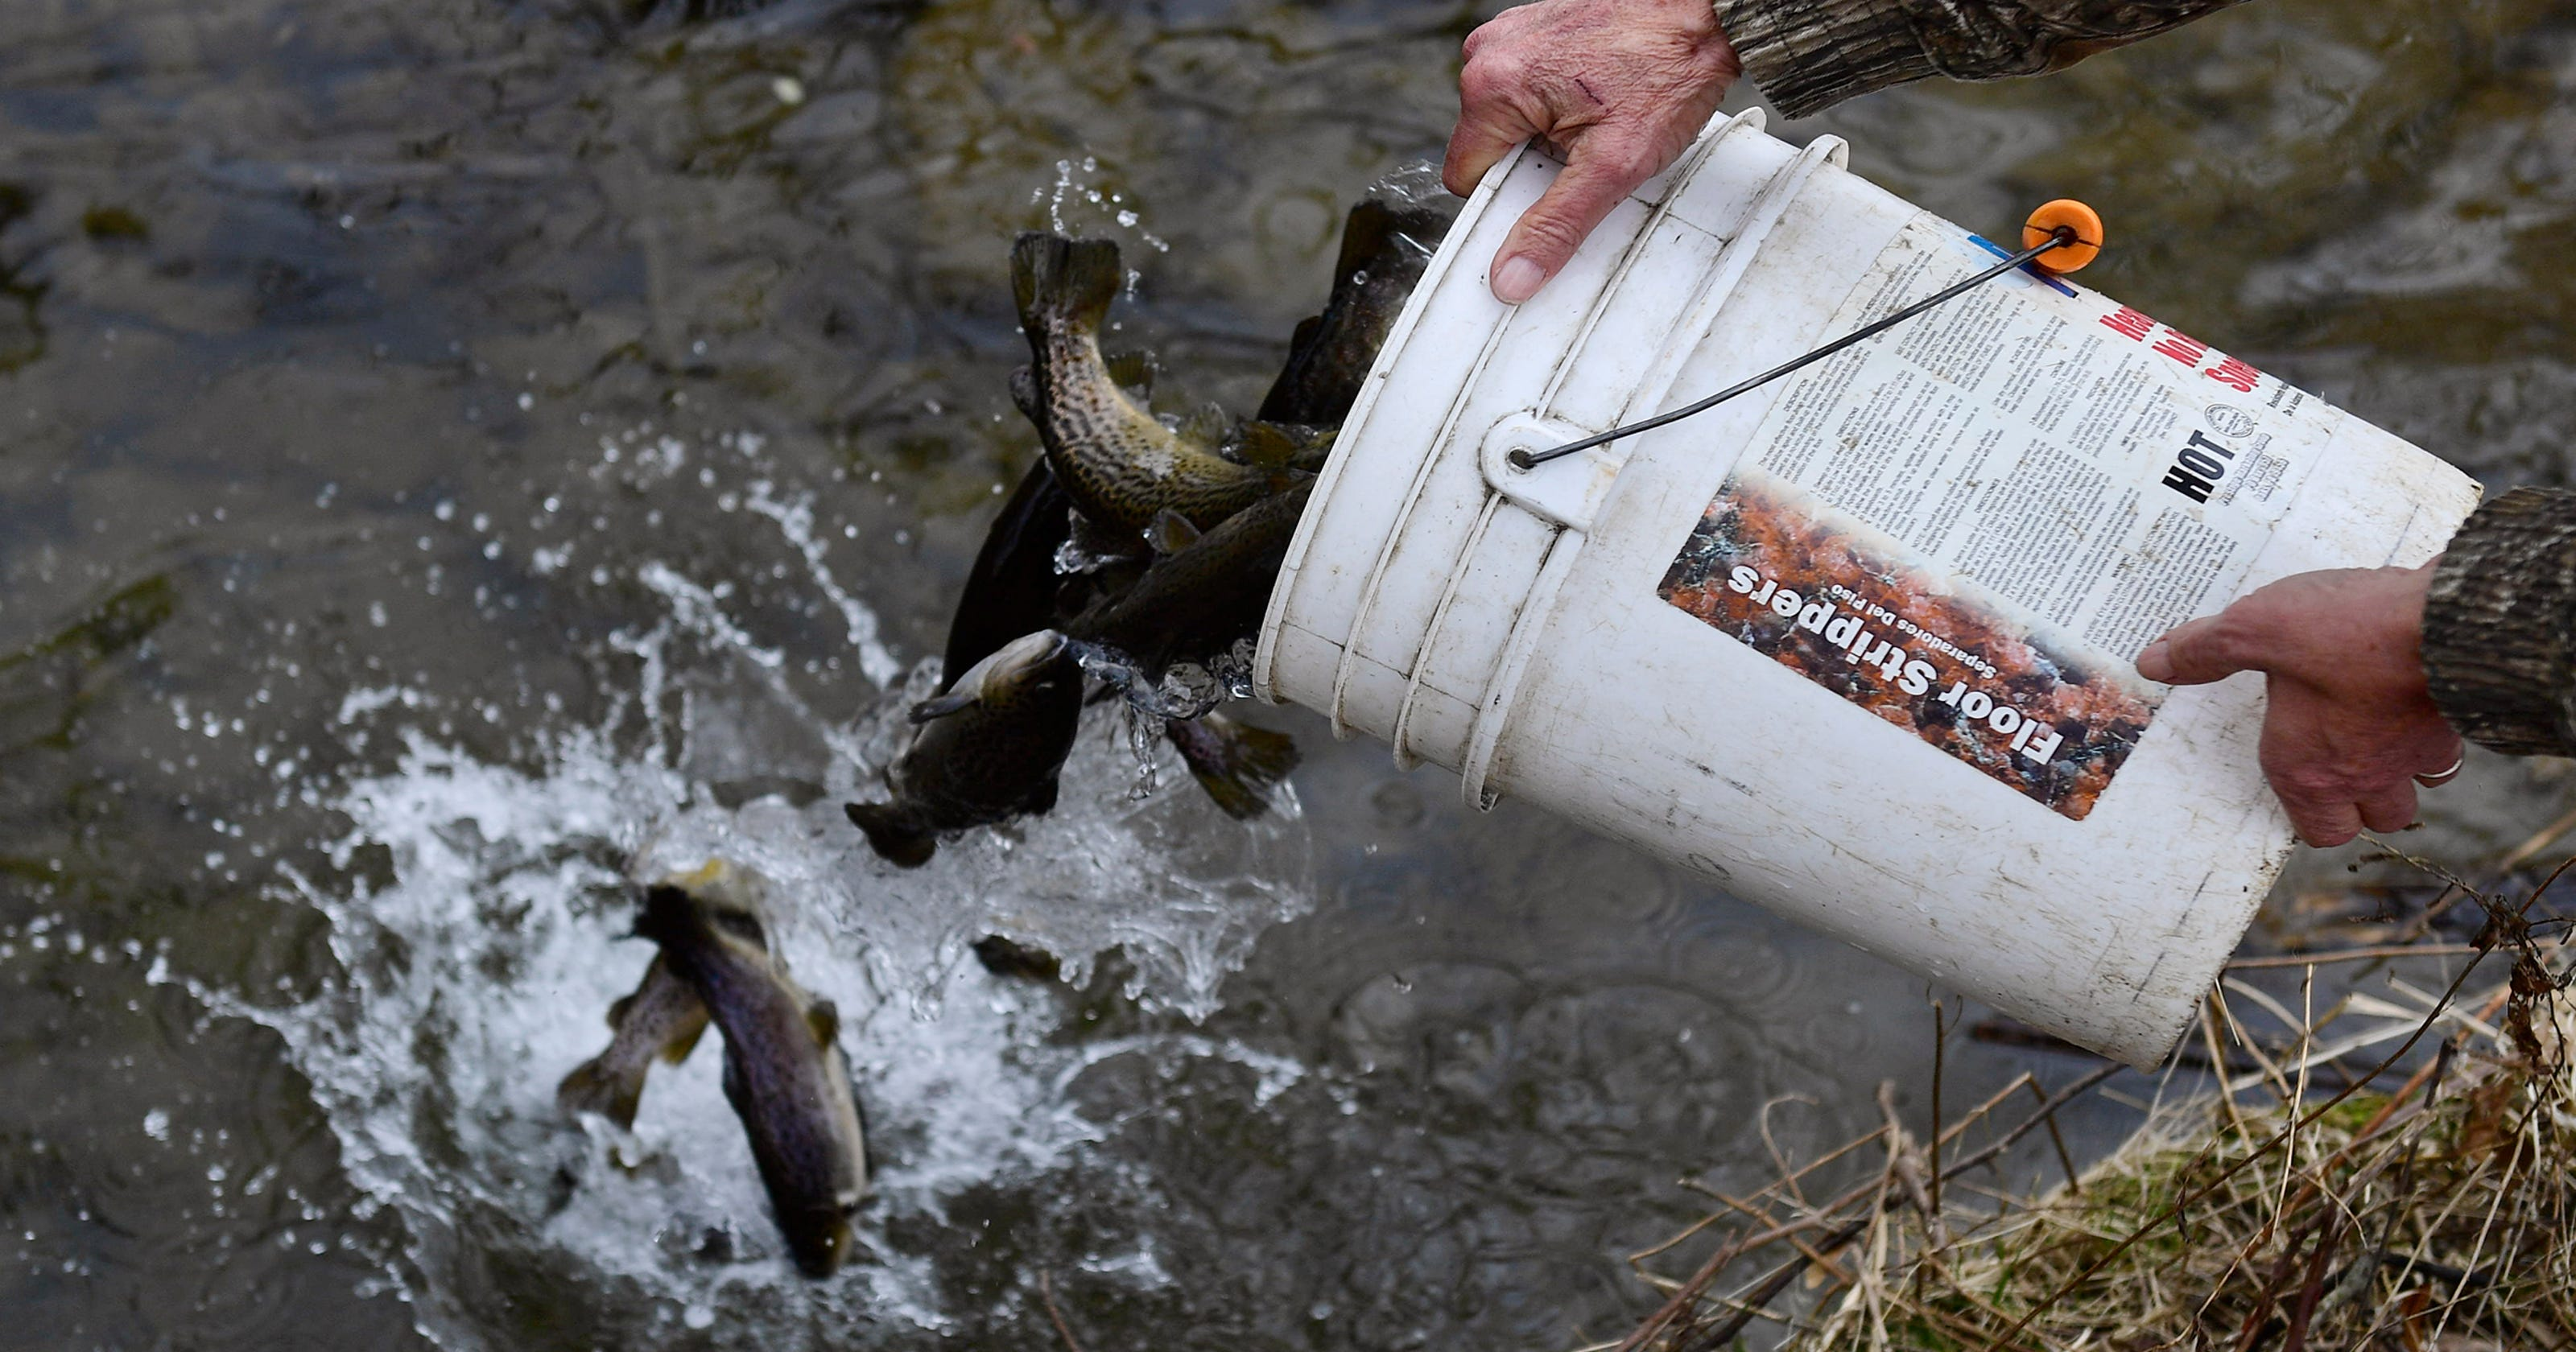 Stocked trout numbers stable in Pa  amidst threat of hatchery closures